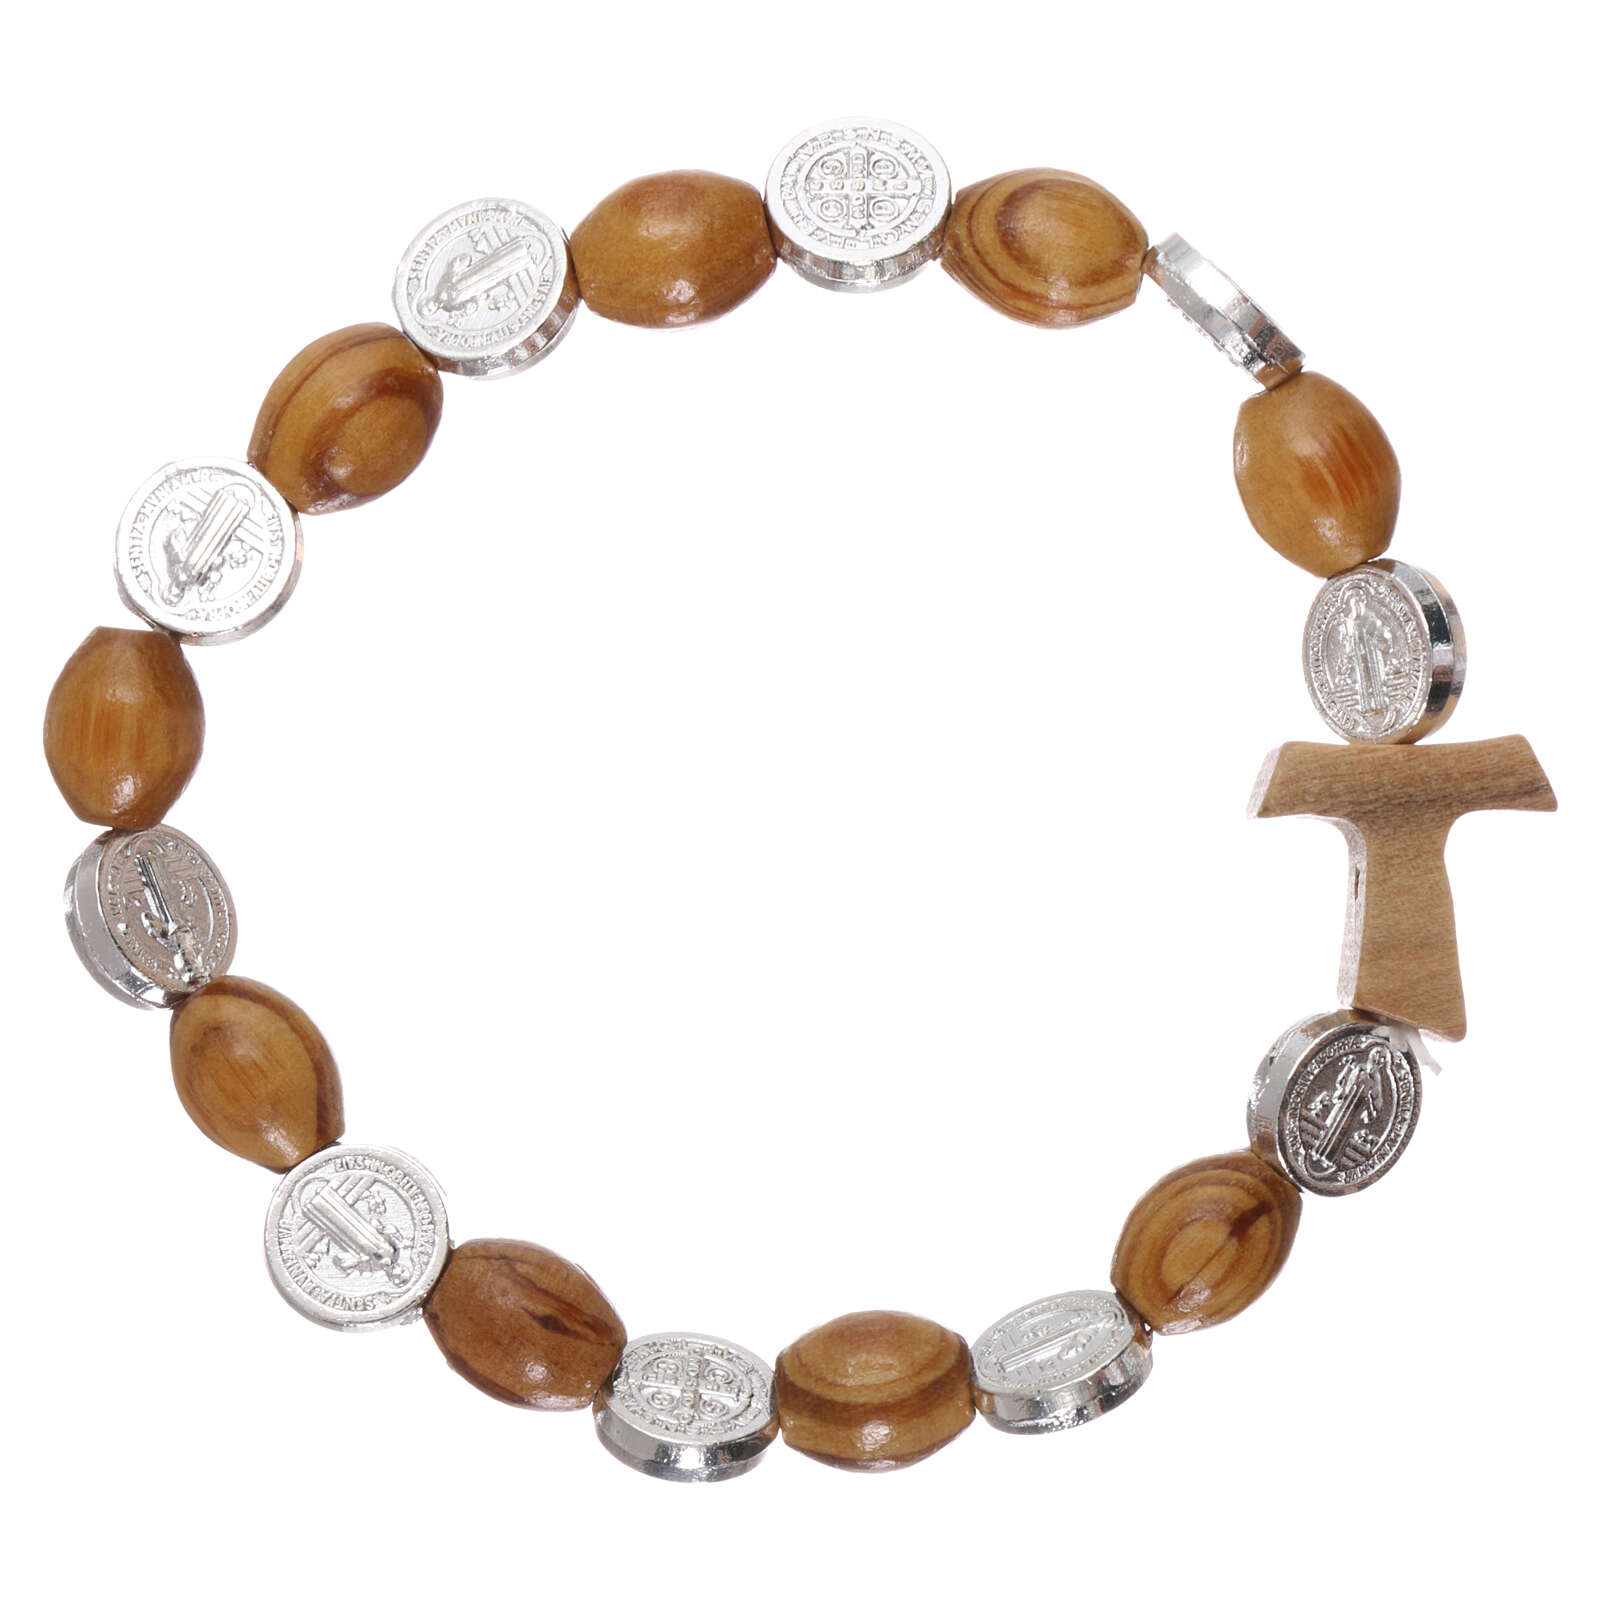 One decade rosary bracelet in pine and olive wood with Tau cross and oval beads 8x6 mm, Saint Benedict 4